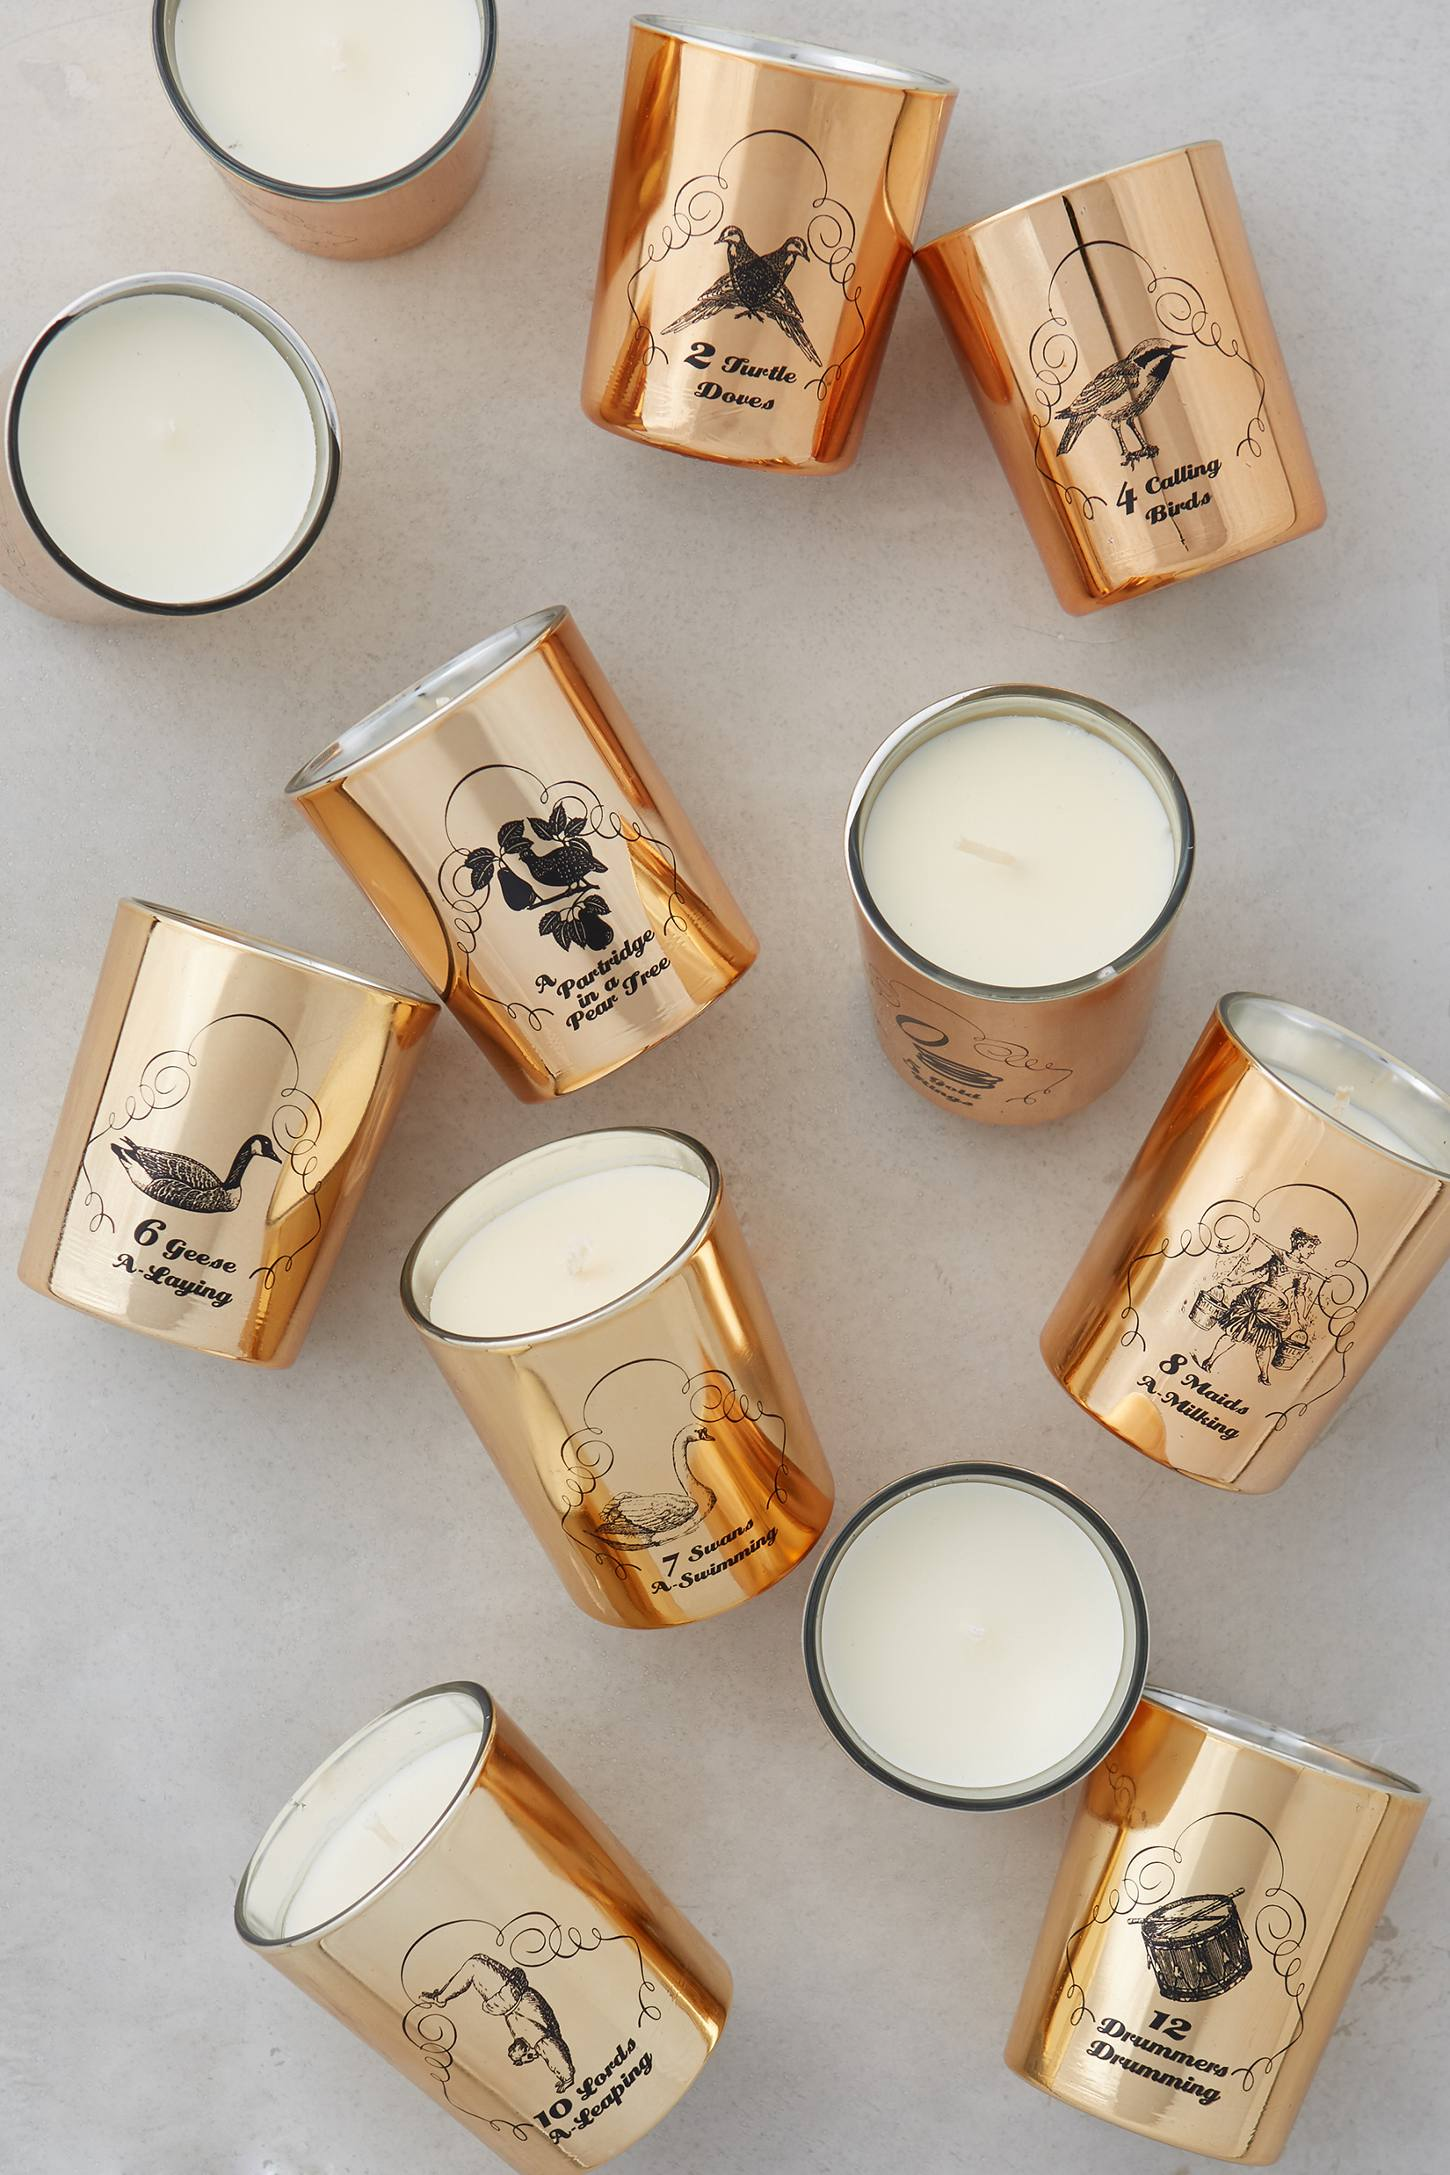 12 Days Of Christmas Candle Set